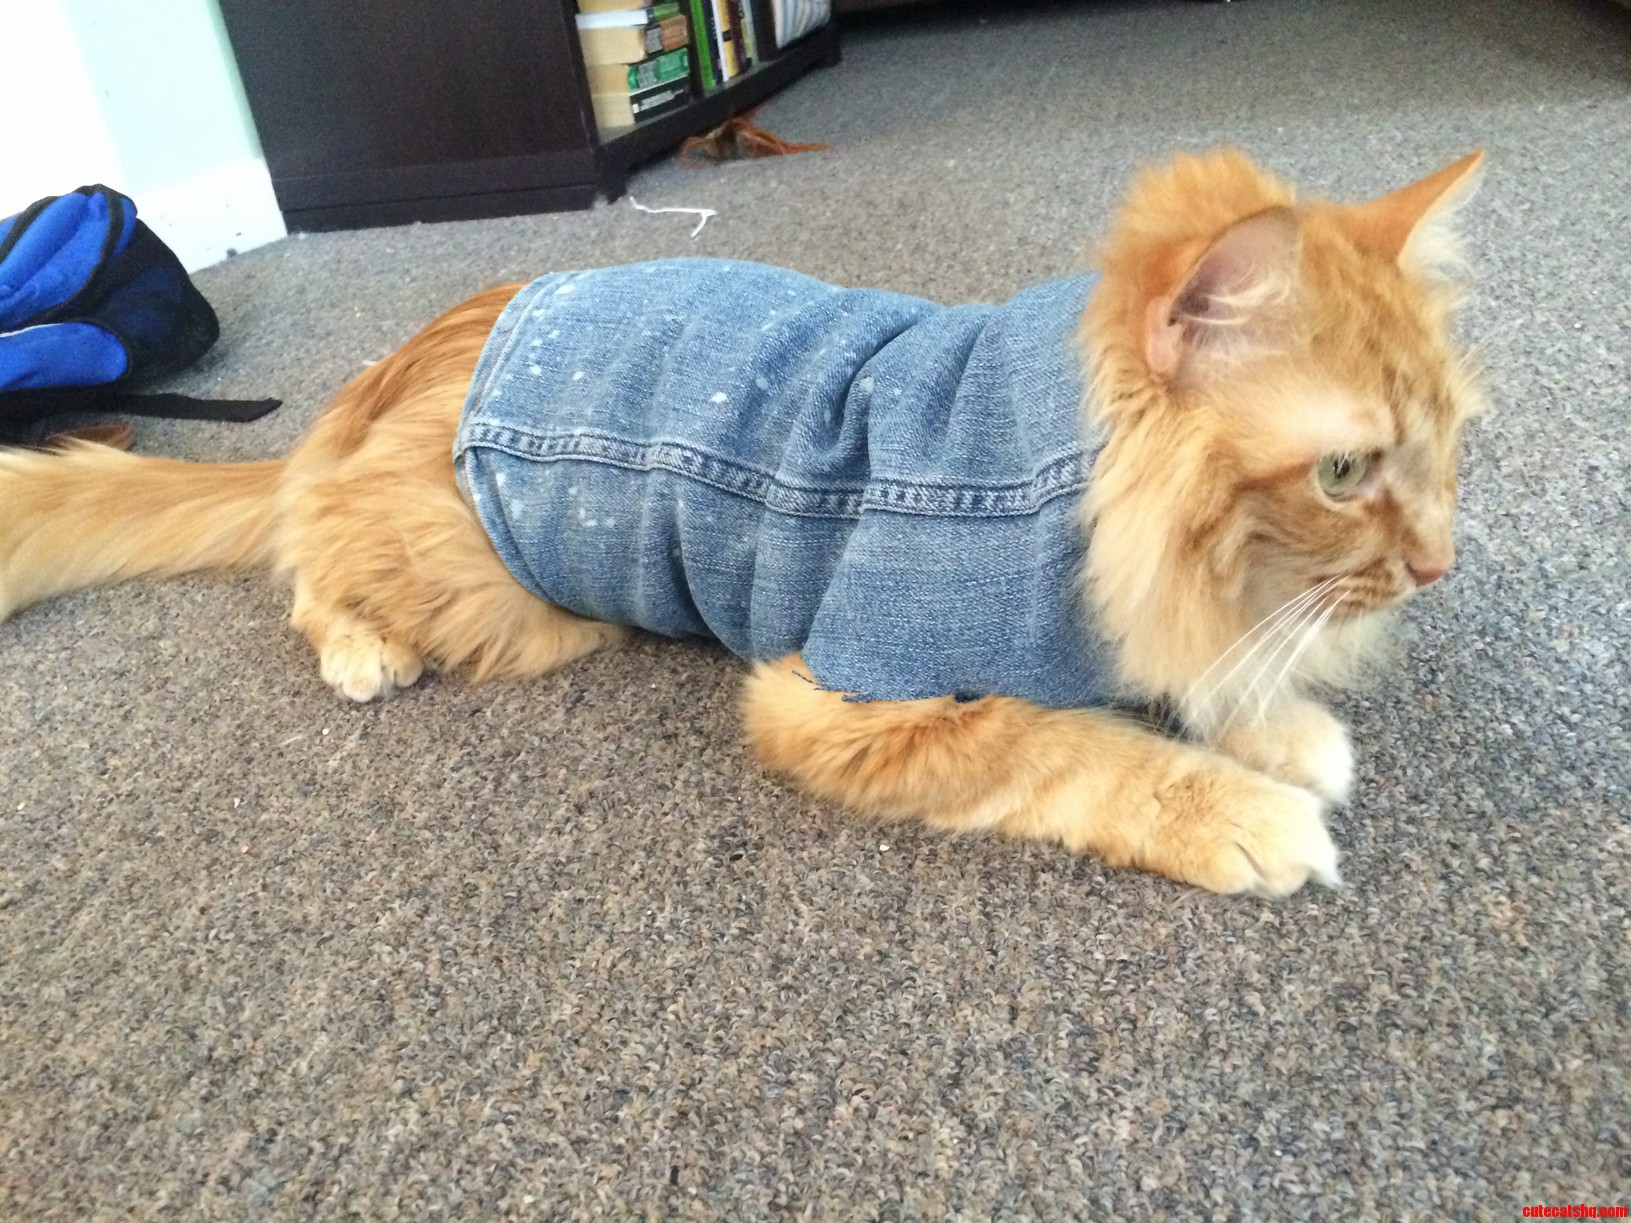 This Is What Happens When I Turn Old Jeans Into Cutoffs- Instant Jean Jacket For Murray